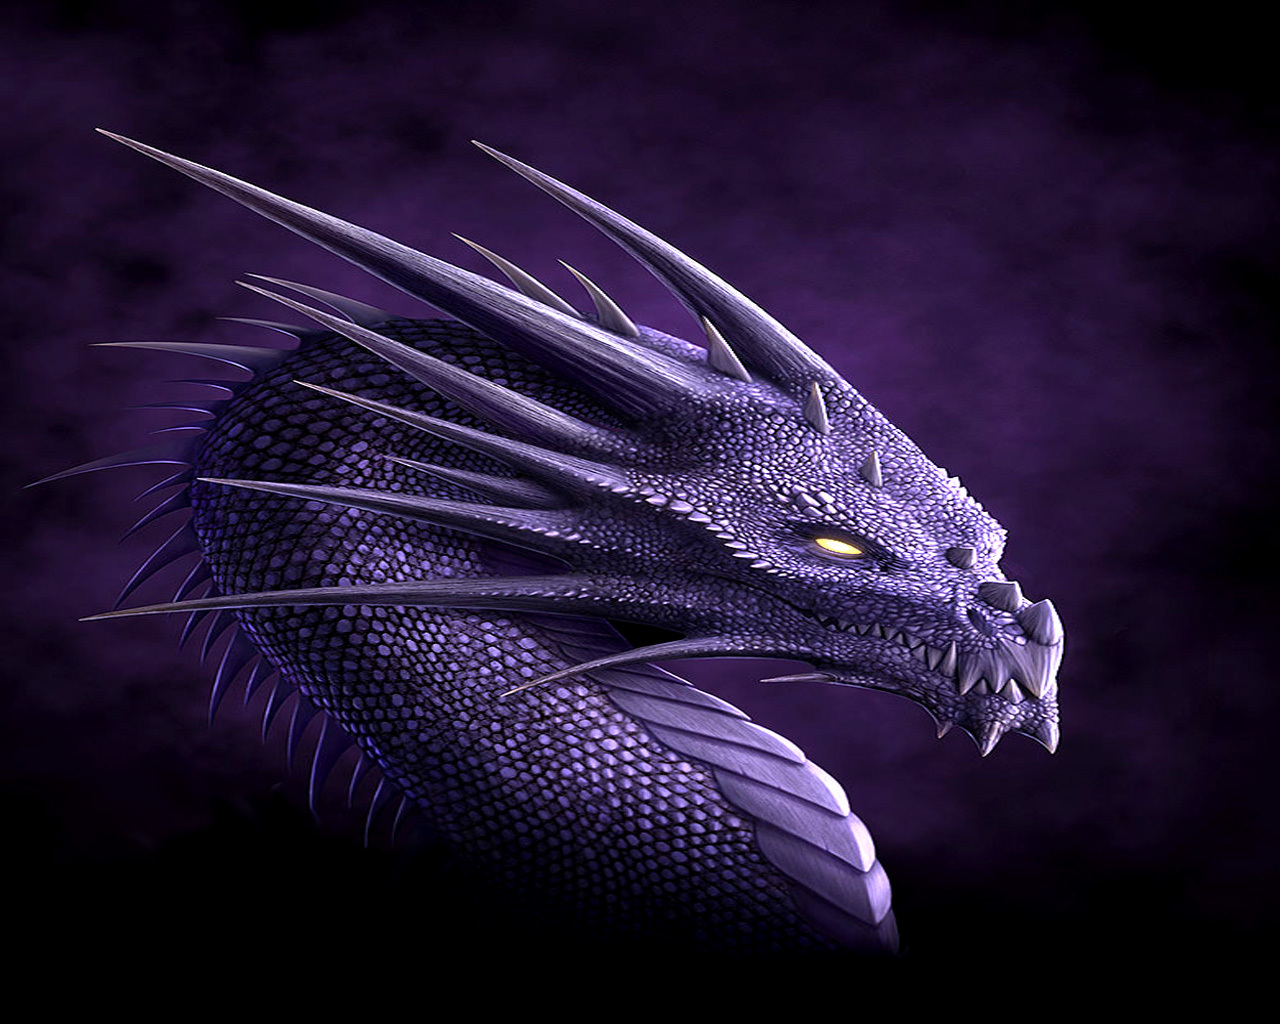 Dragon Wallpaper - Dragons Wallpaper (13975574) - Fanpop